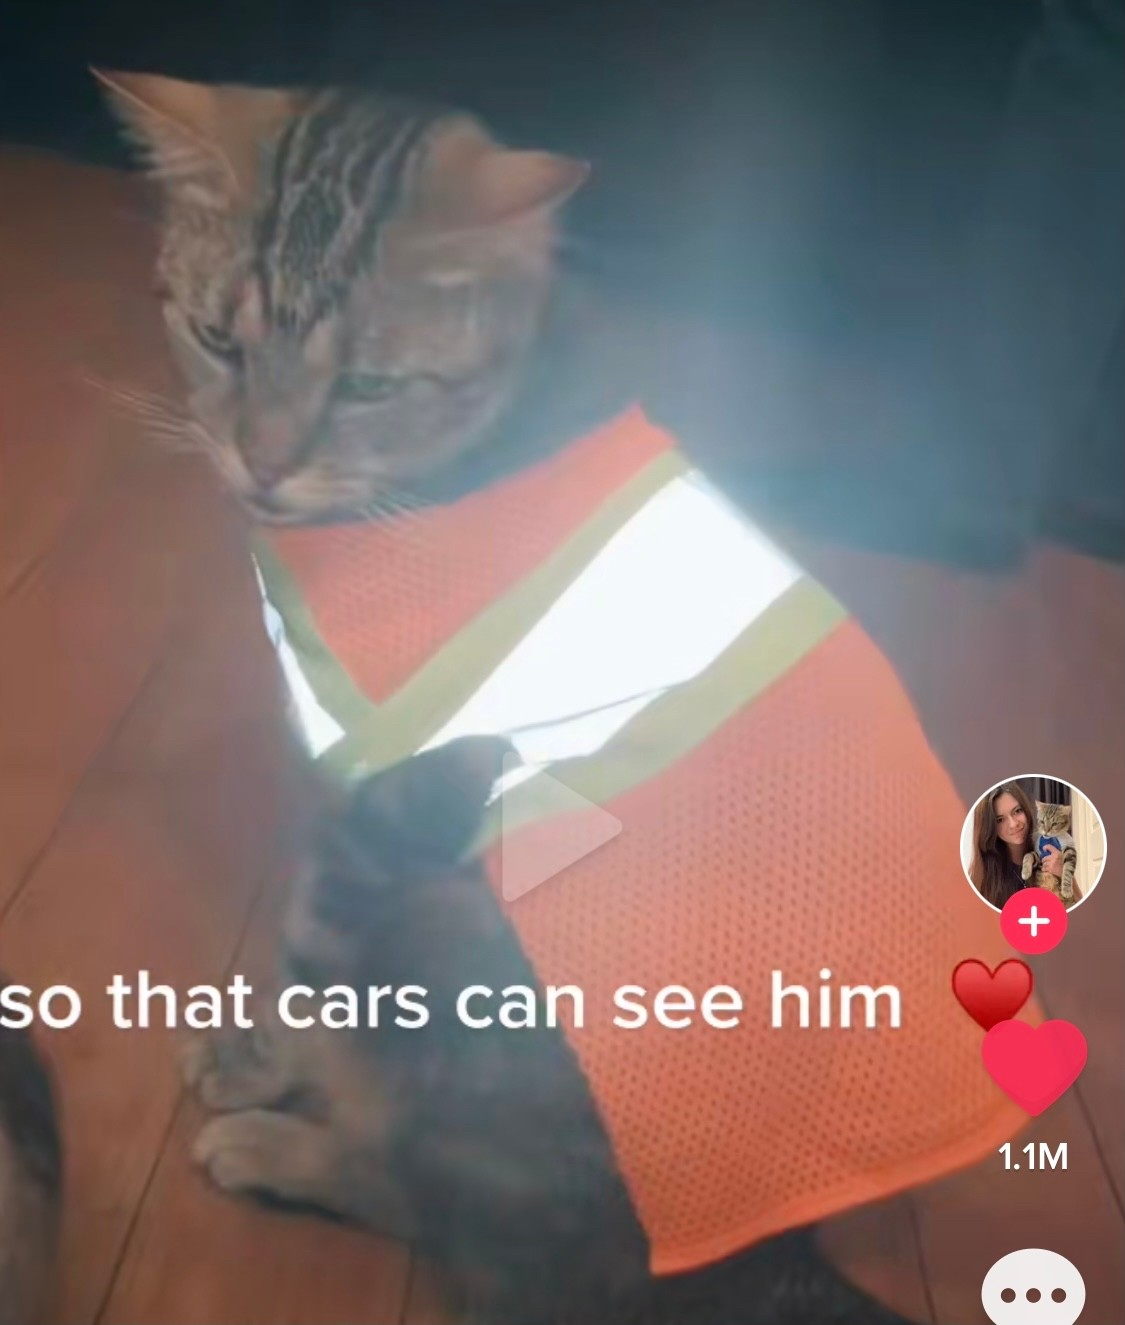 So that cars can see him